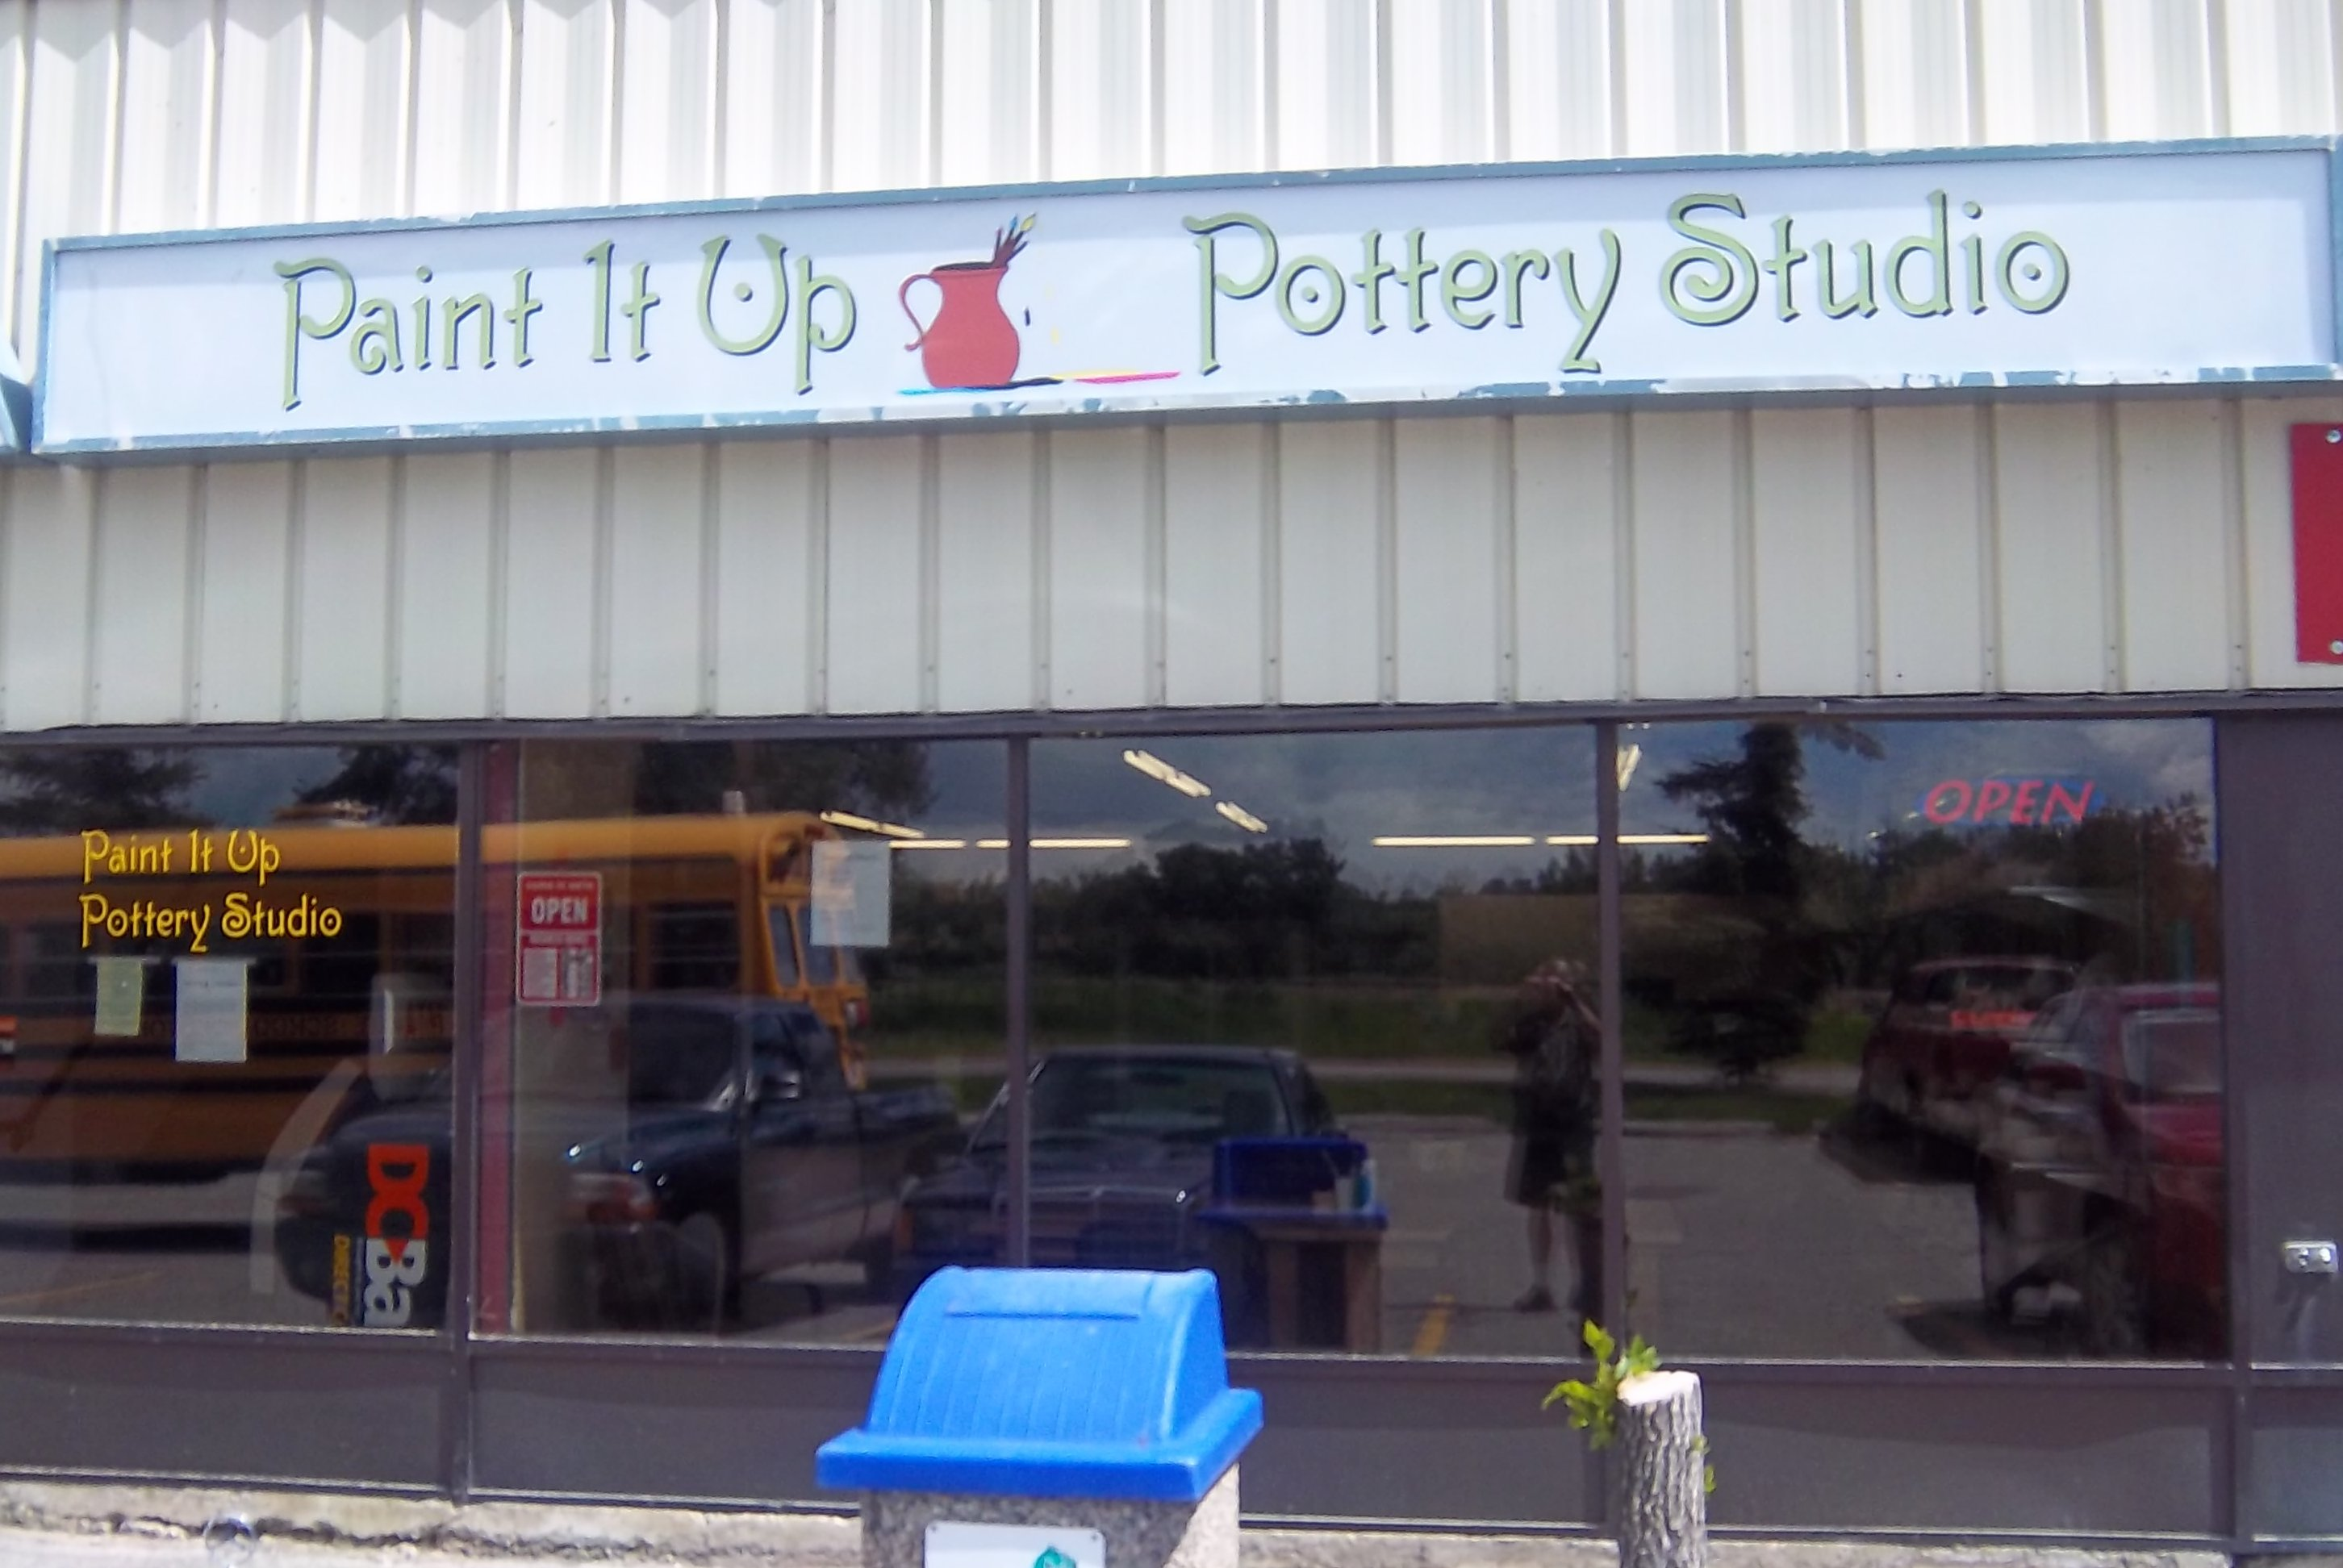 Store front for Paint It Up Pottery Studio